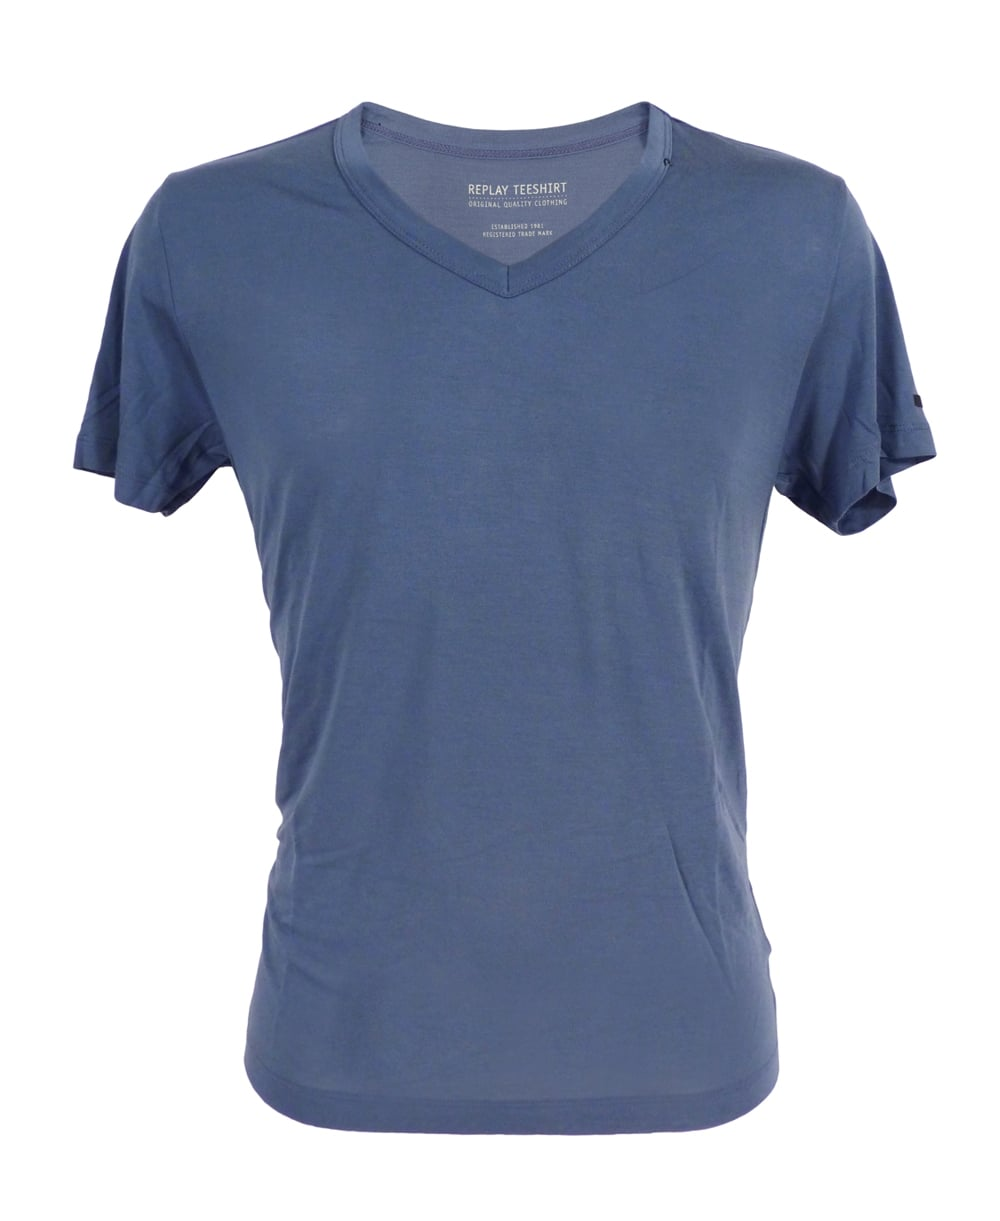 Replay bamboo fibre t shirt in blue replay from jonathan for Bamboo t shirt printing